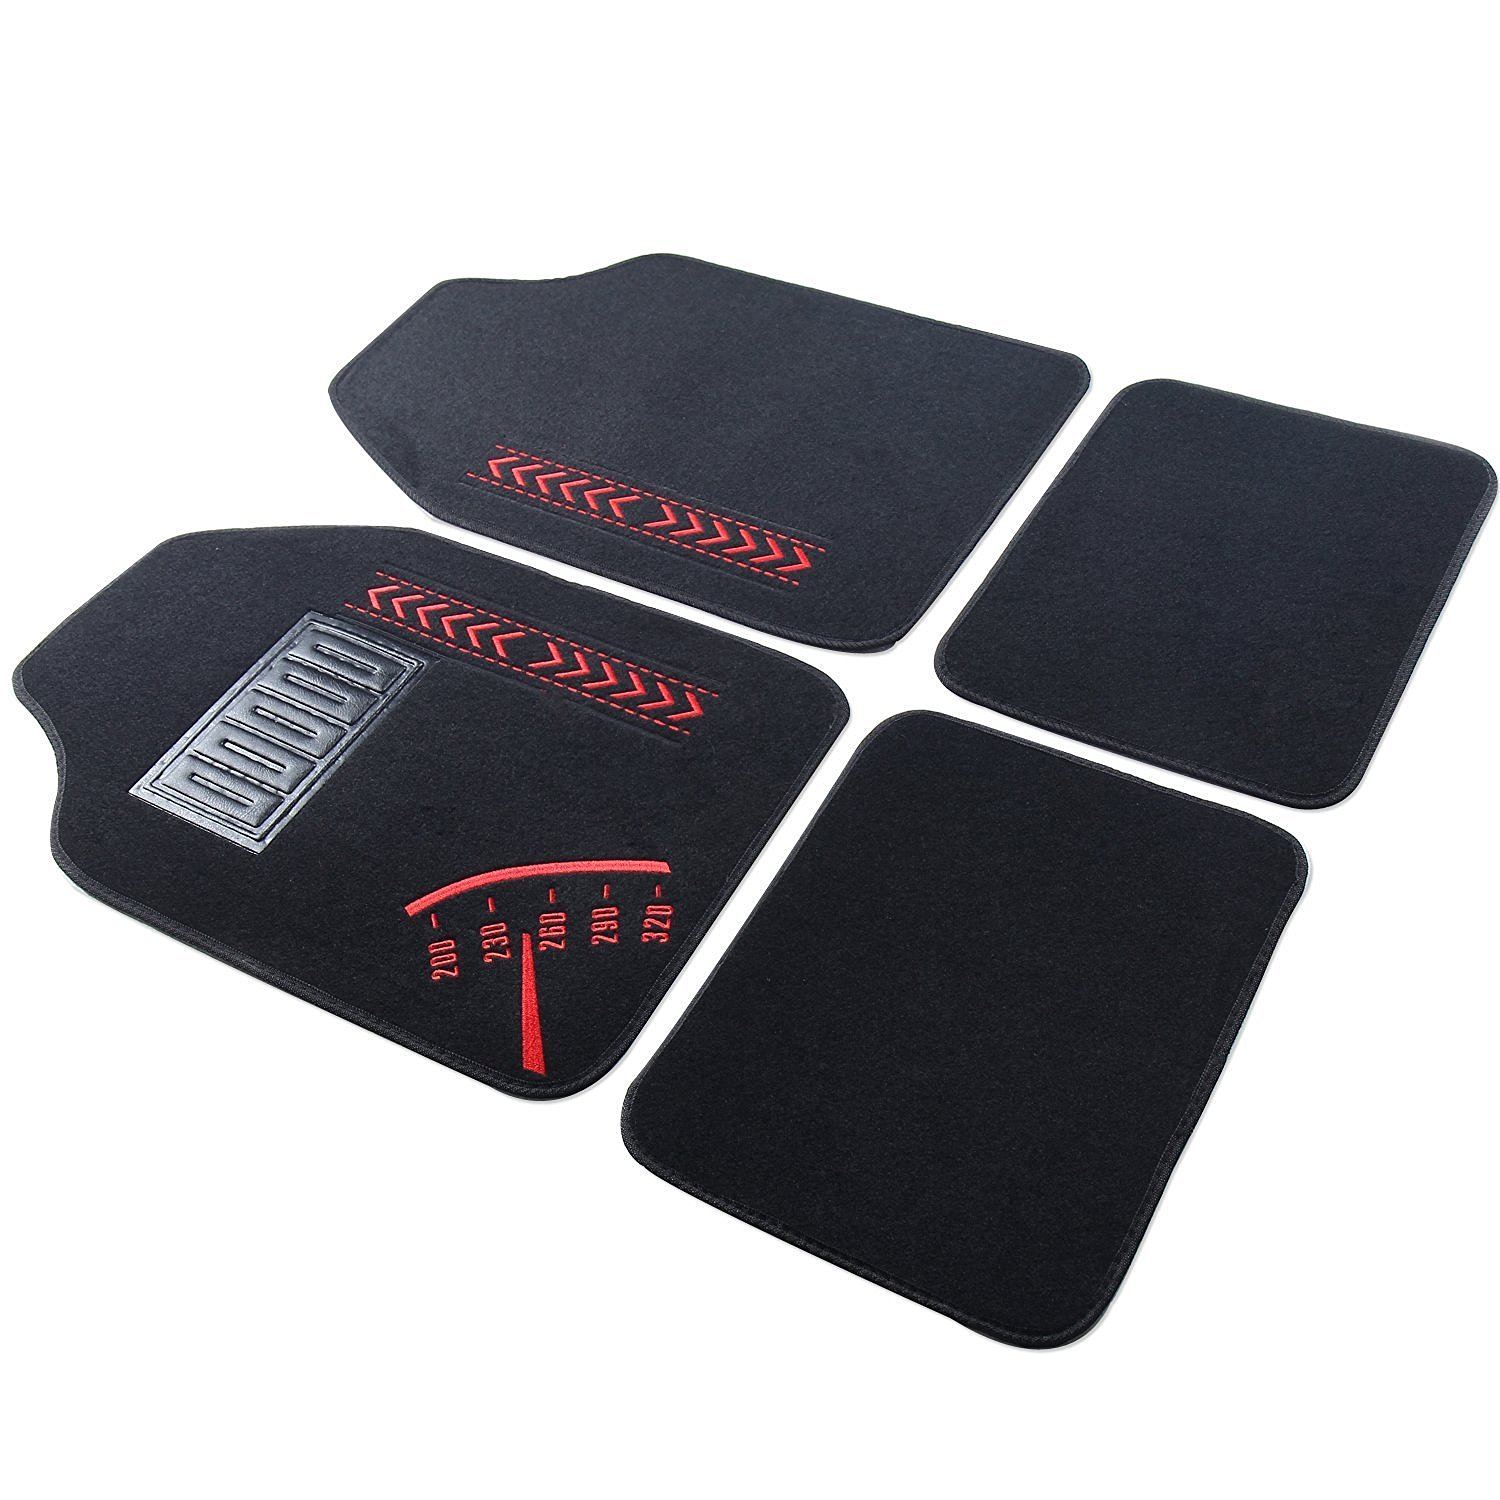 Adeco 4-Piece Car Vehicle Universal Floor Mats by Adeco Trading